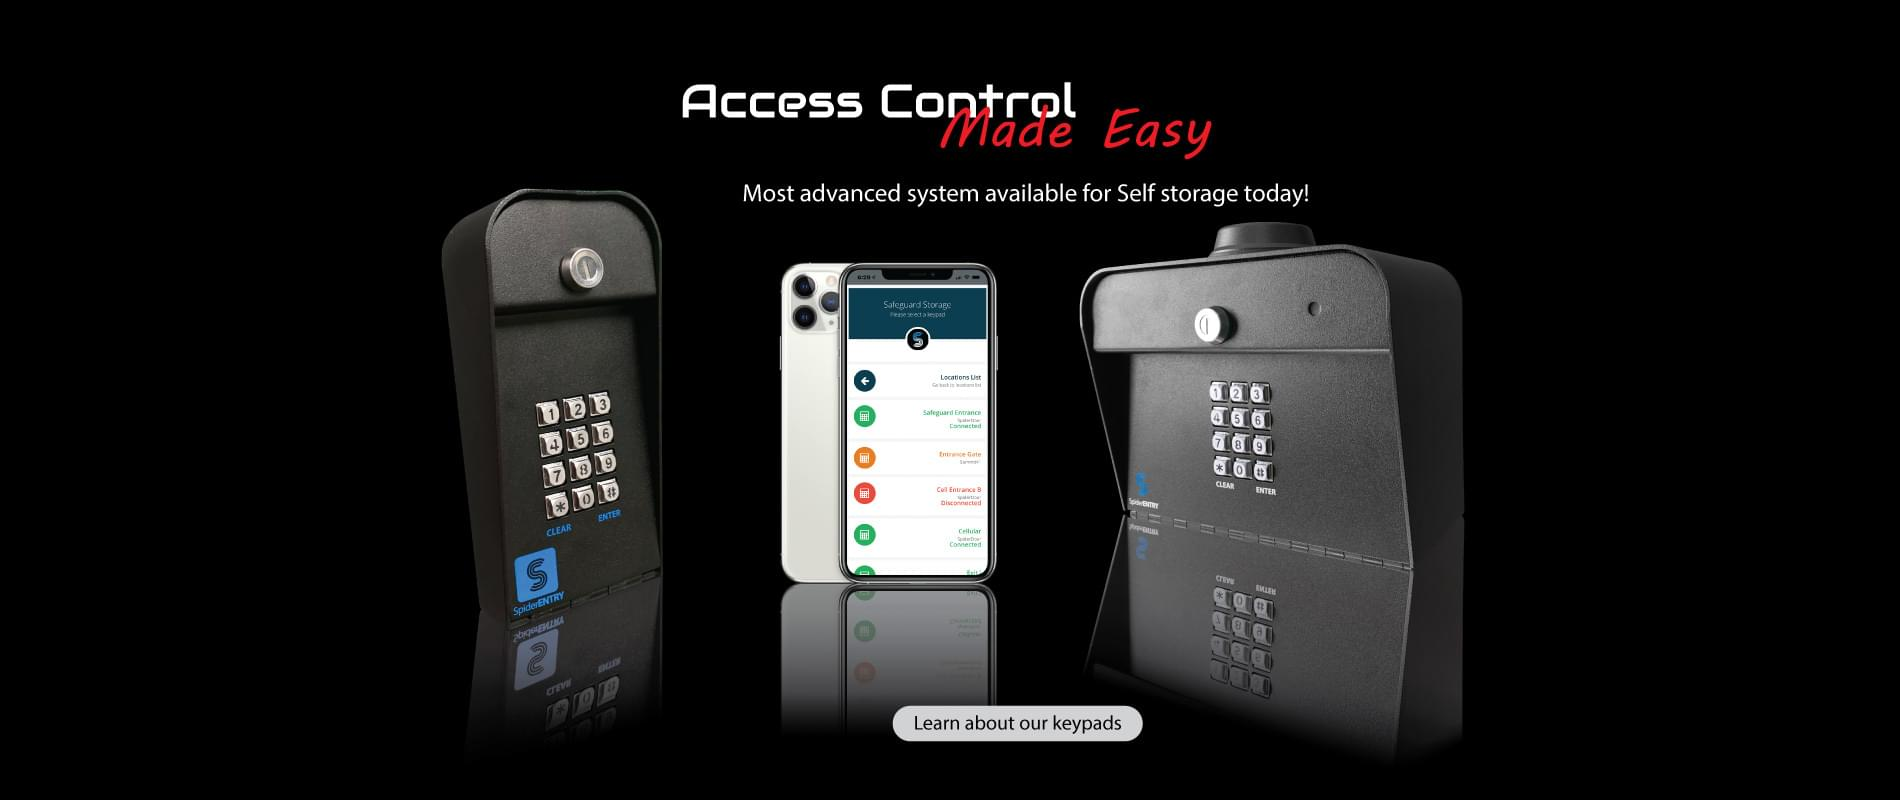 Spiderdoor cellular keypads along with a managers app